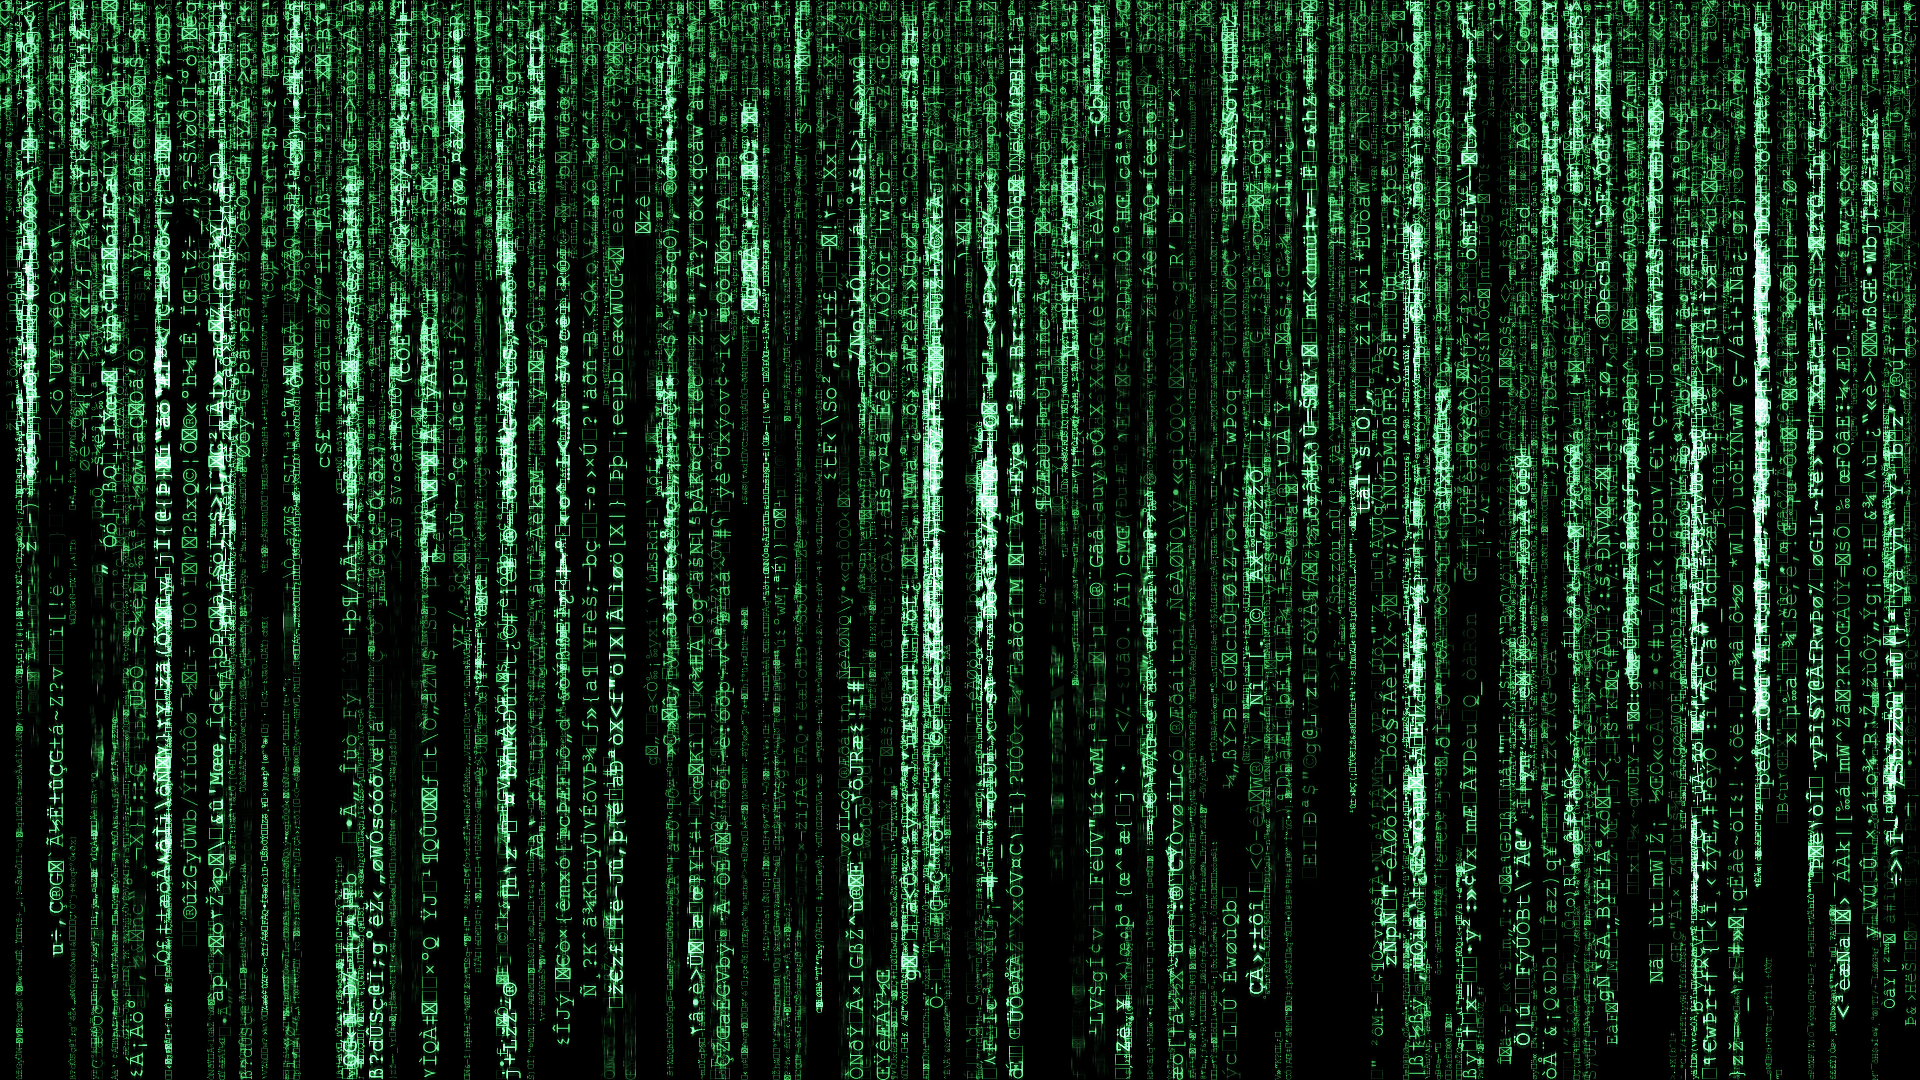 matrix wallpaper full hd sdeerwallpaper